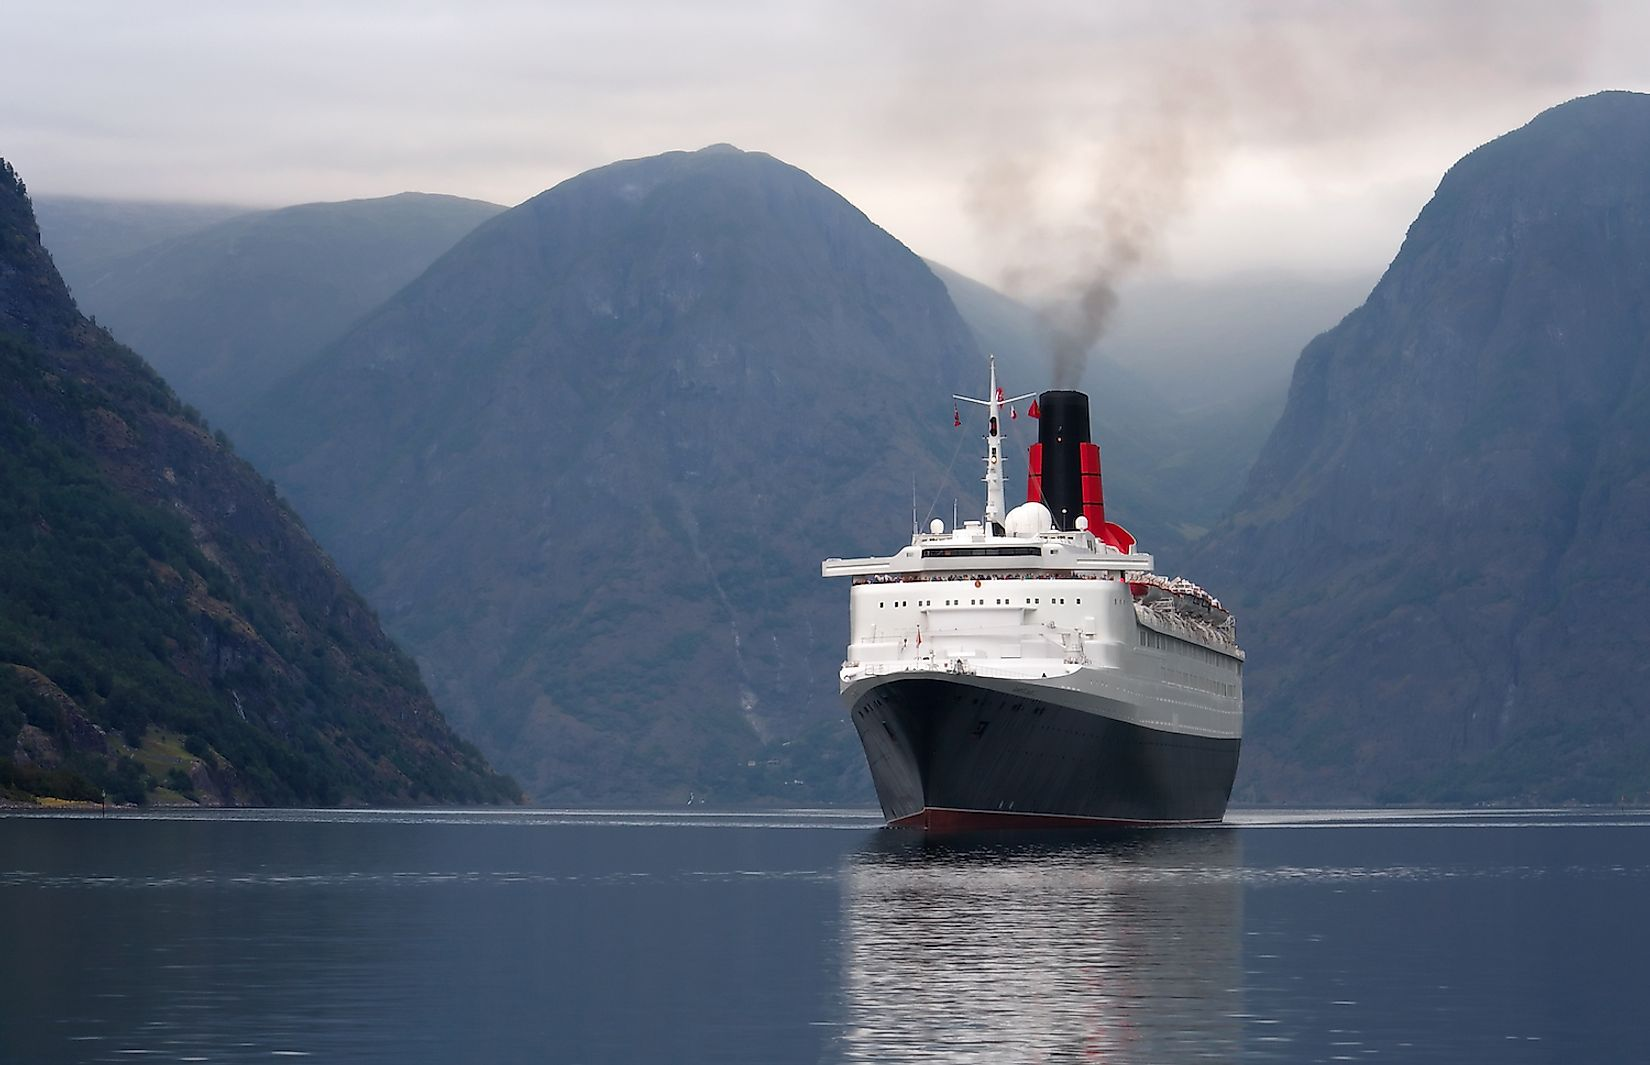 Wastewater released by cruise ships with large numbers of passengers significantly pollute the ocean waters. Image credit: Bjorn Heller/Shutterstock.com